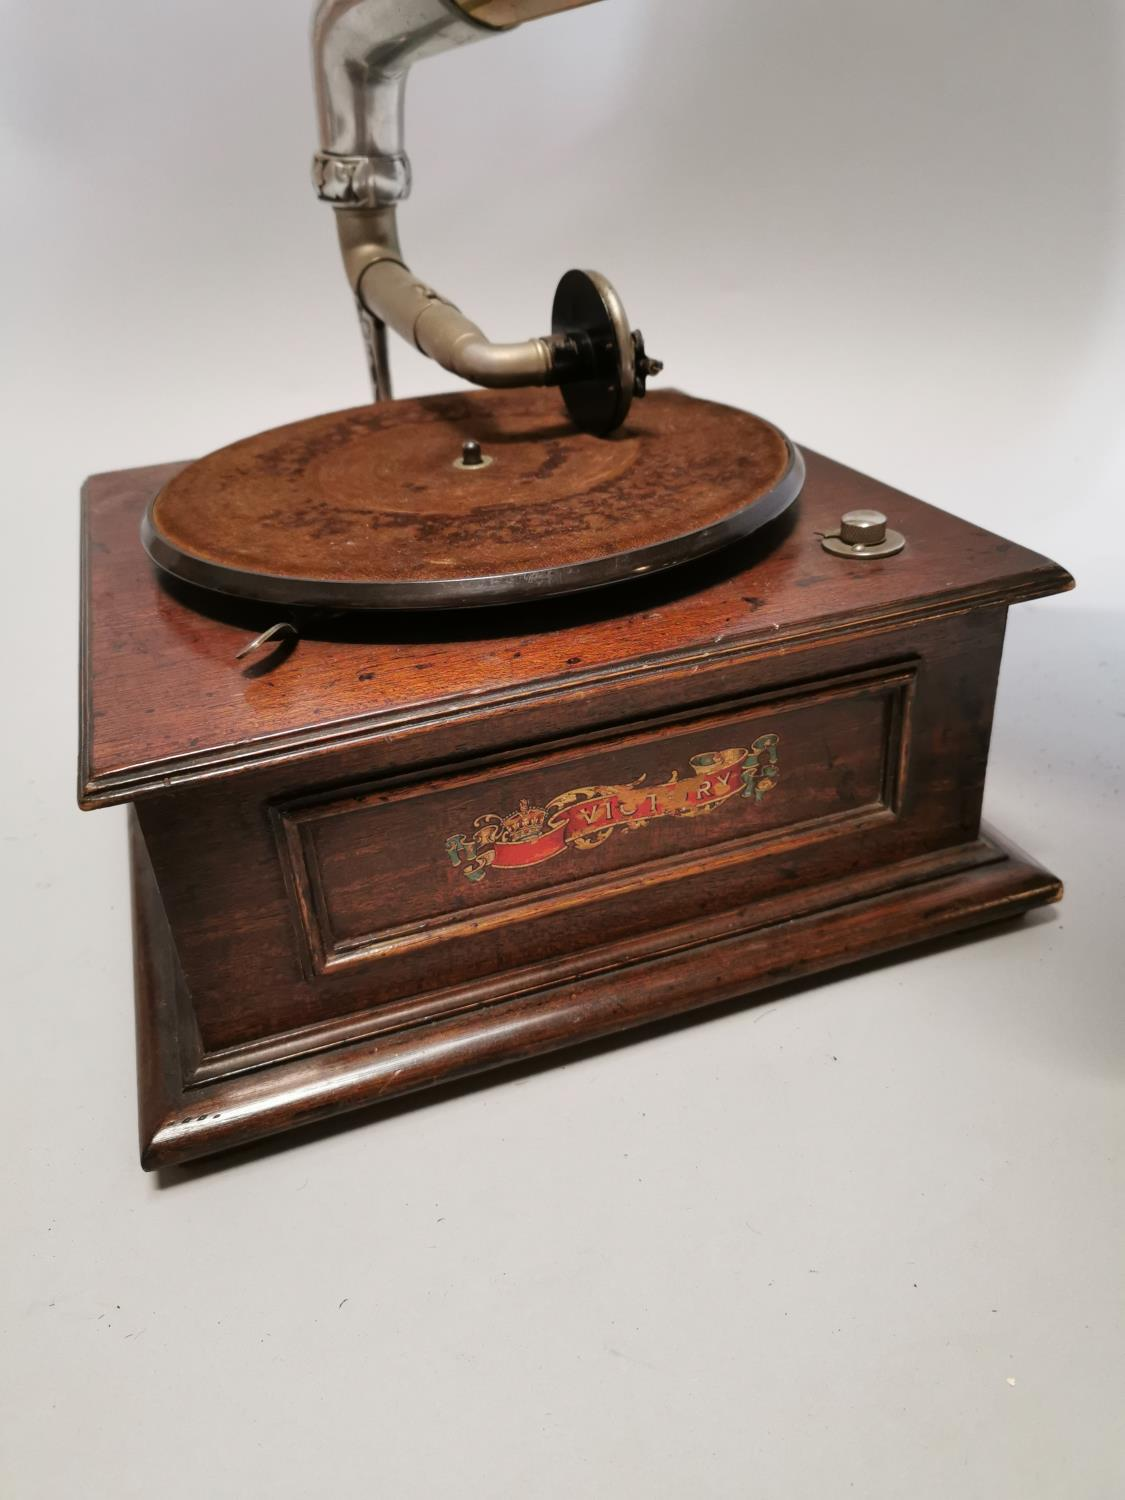 Victory gramophone in oak case with brass horn - Image 5 of 7